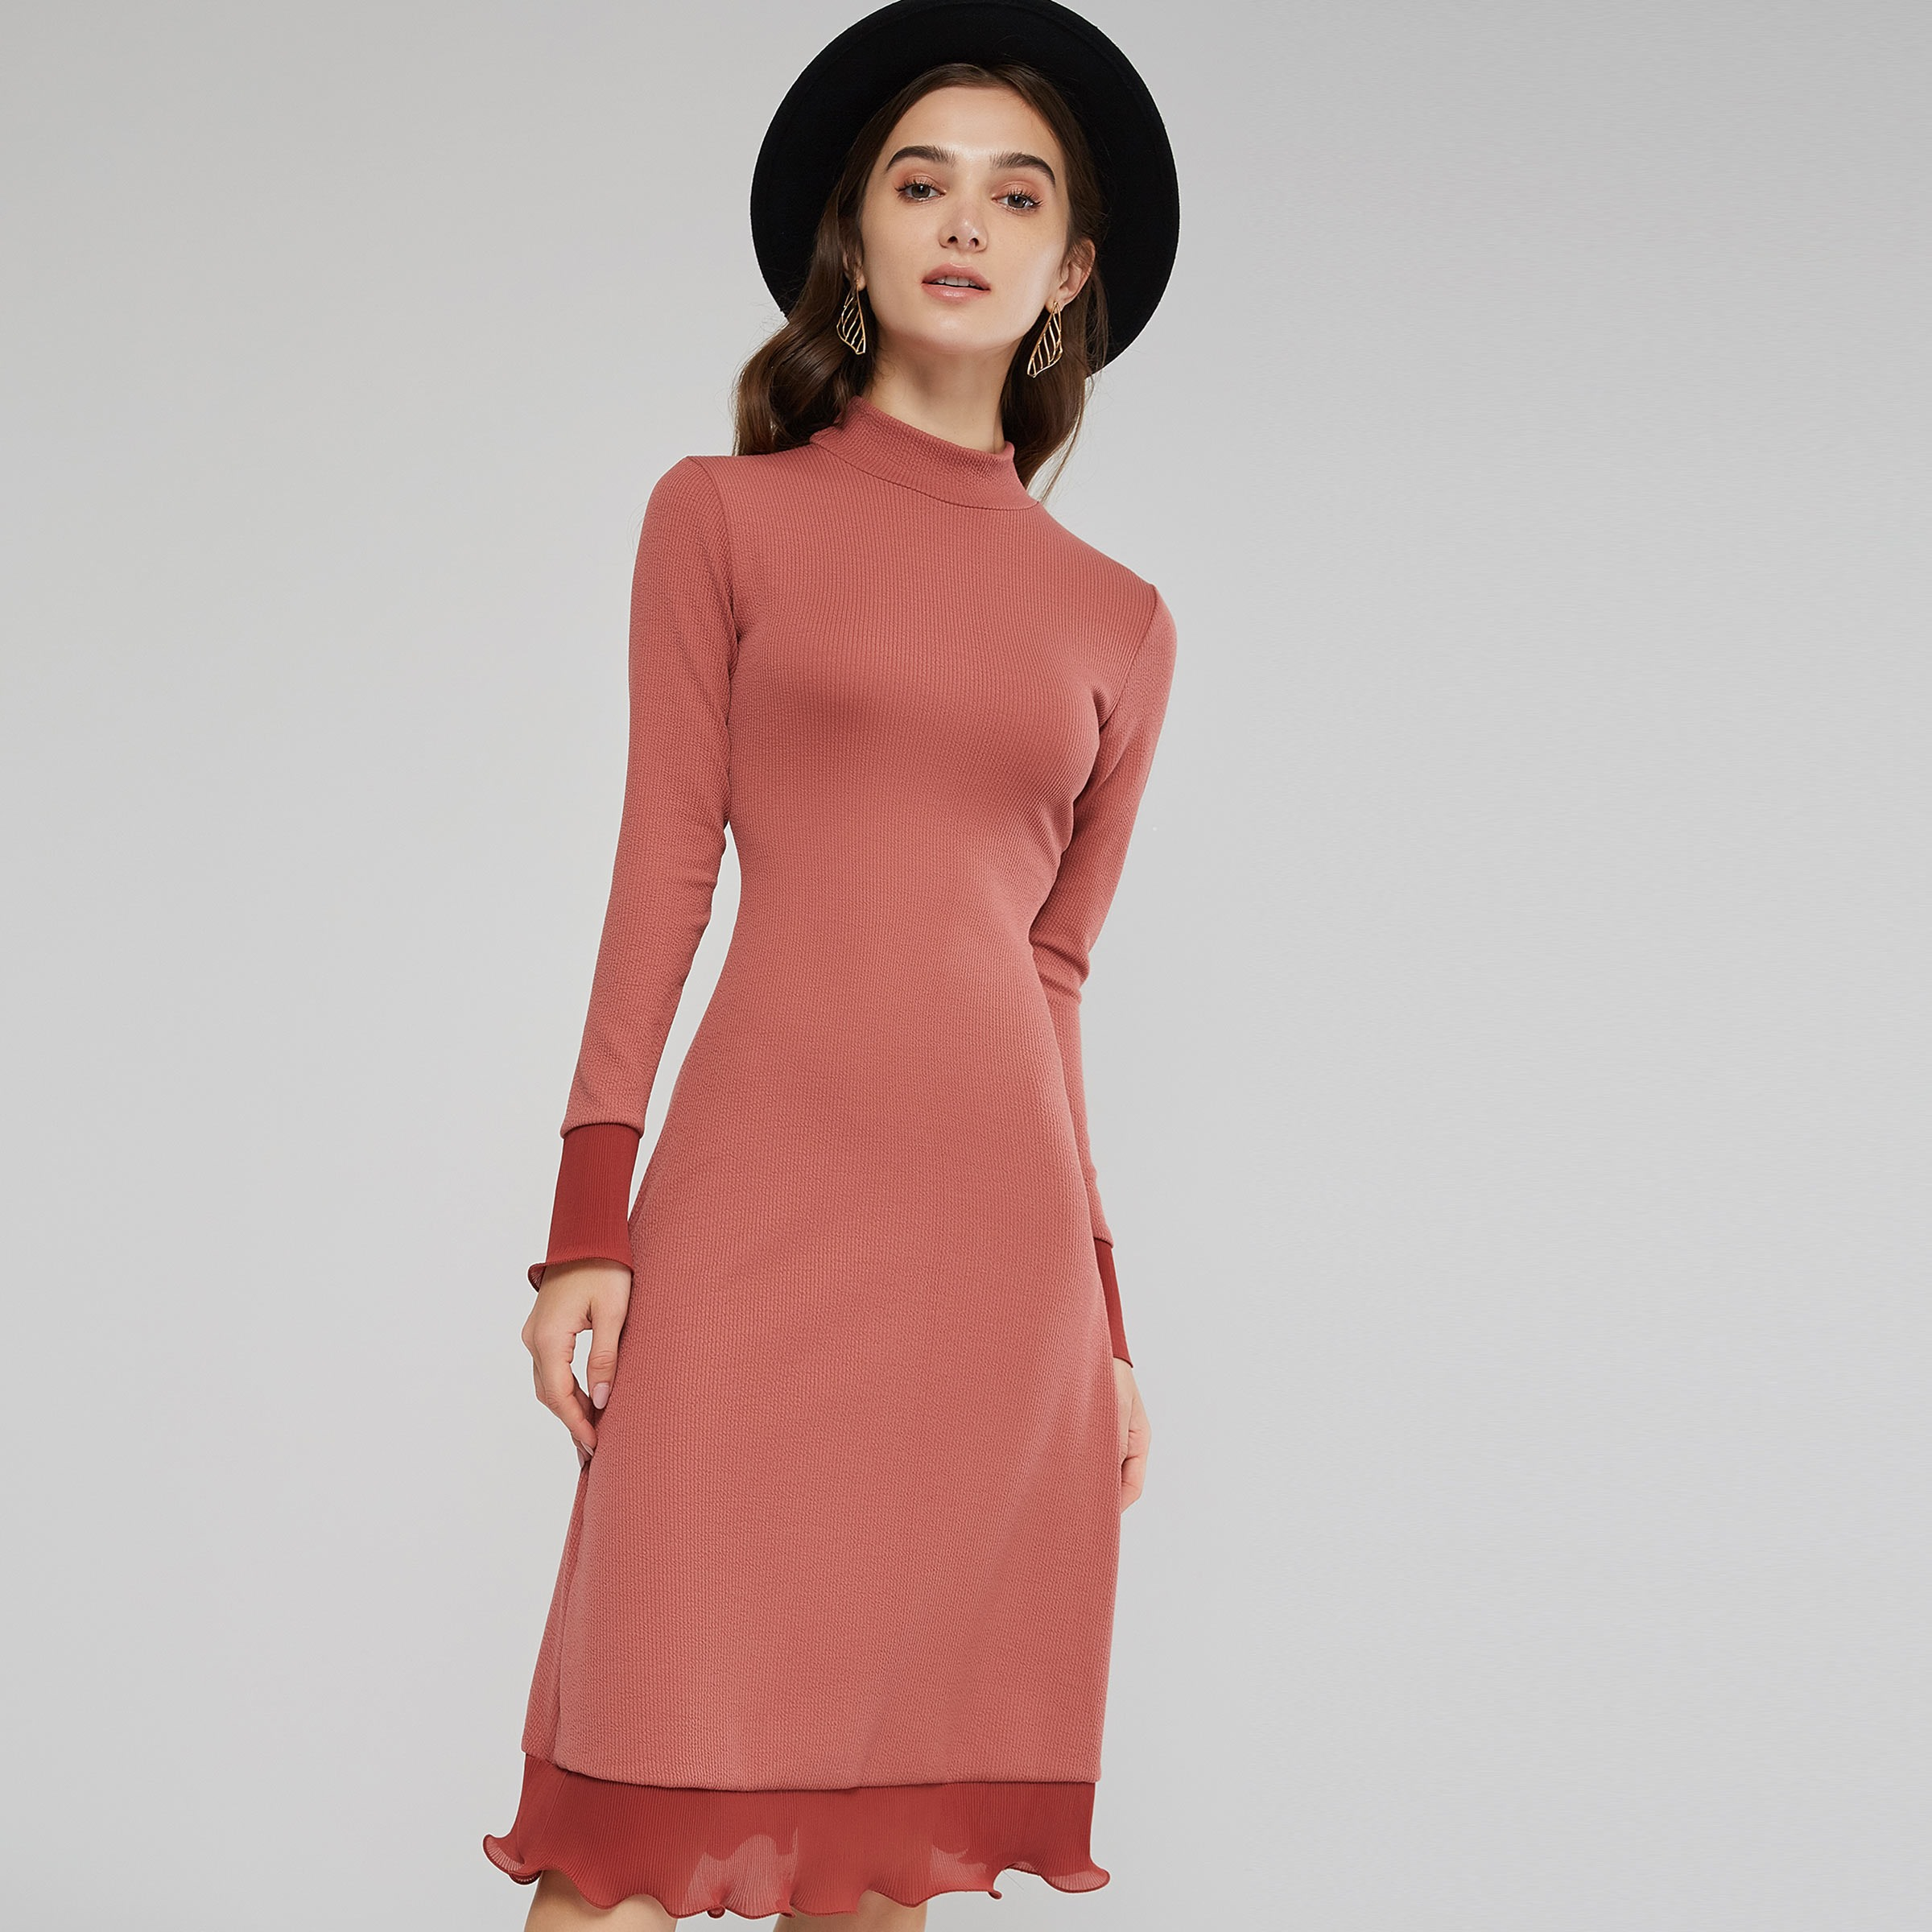 2019 Fall Elegant Sweet Office Lady Preppy Style Women Dresses Aline Pullover Plain Female Fashion Pink Falbala Dress